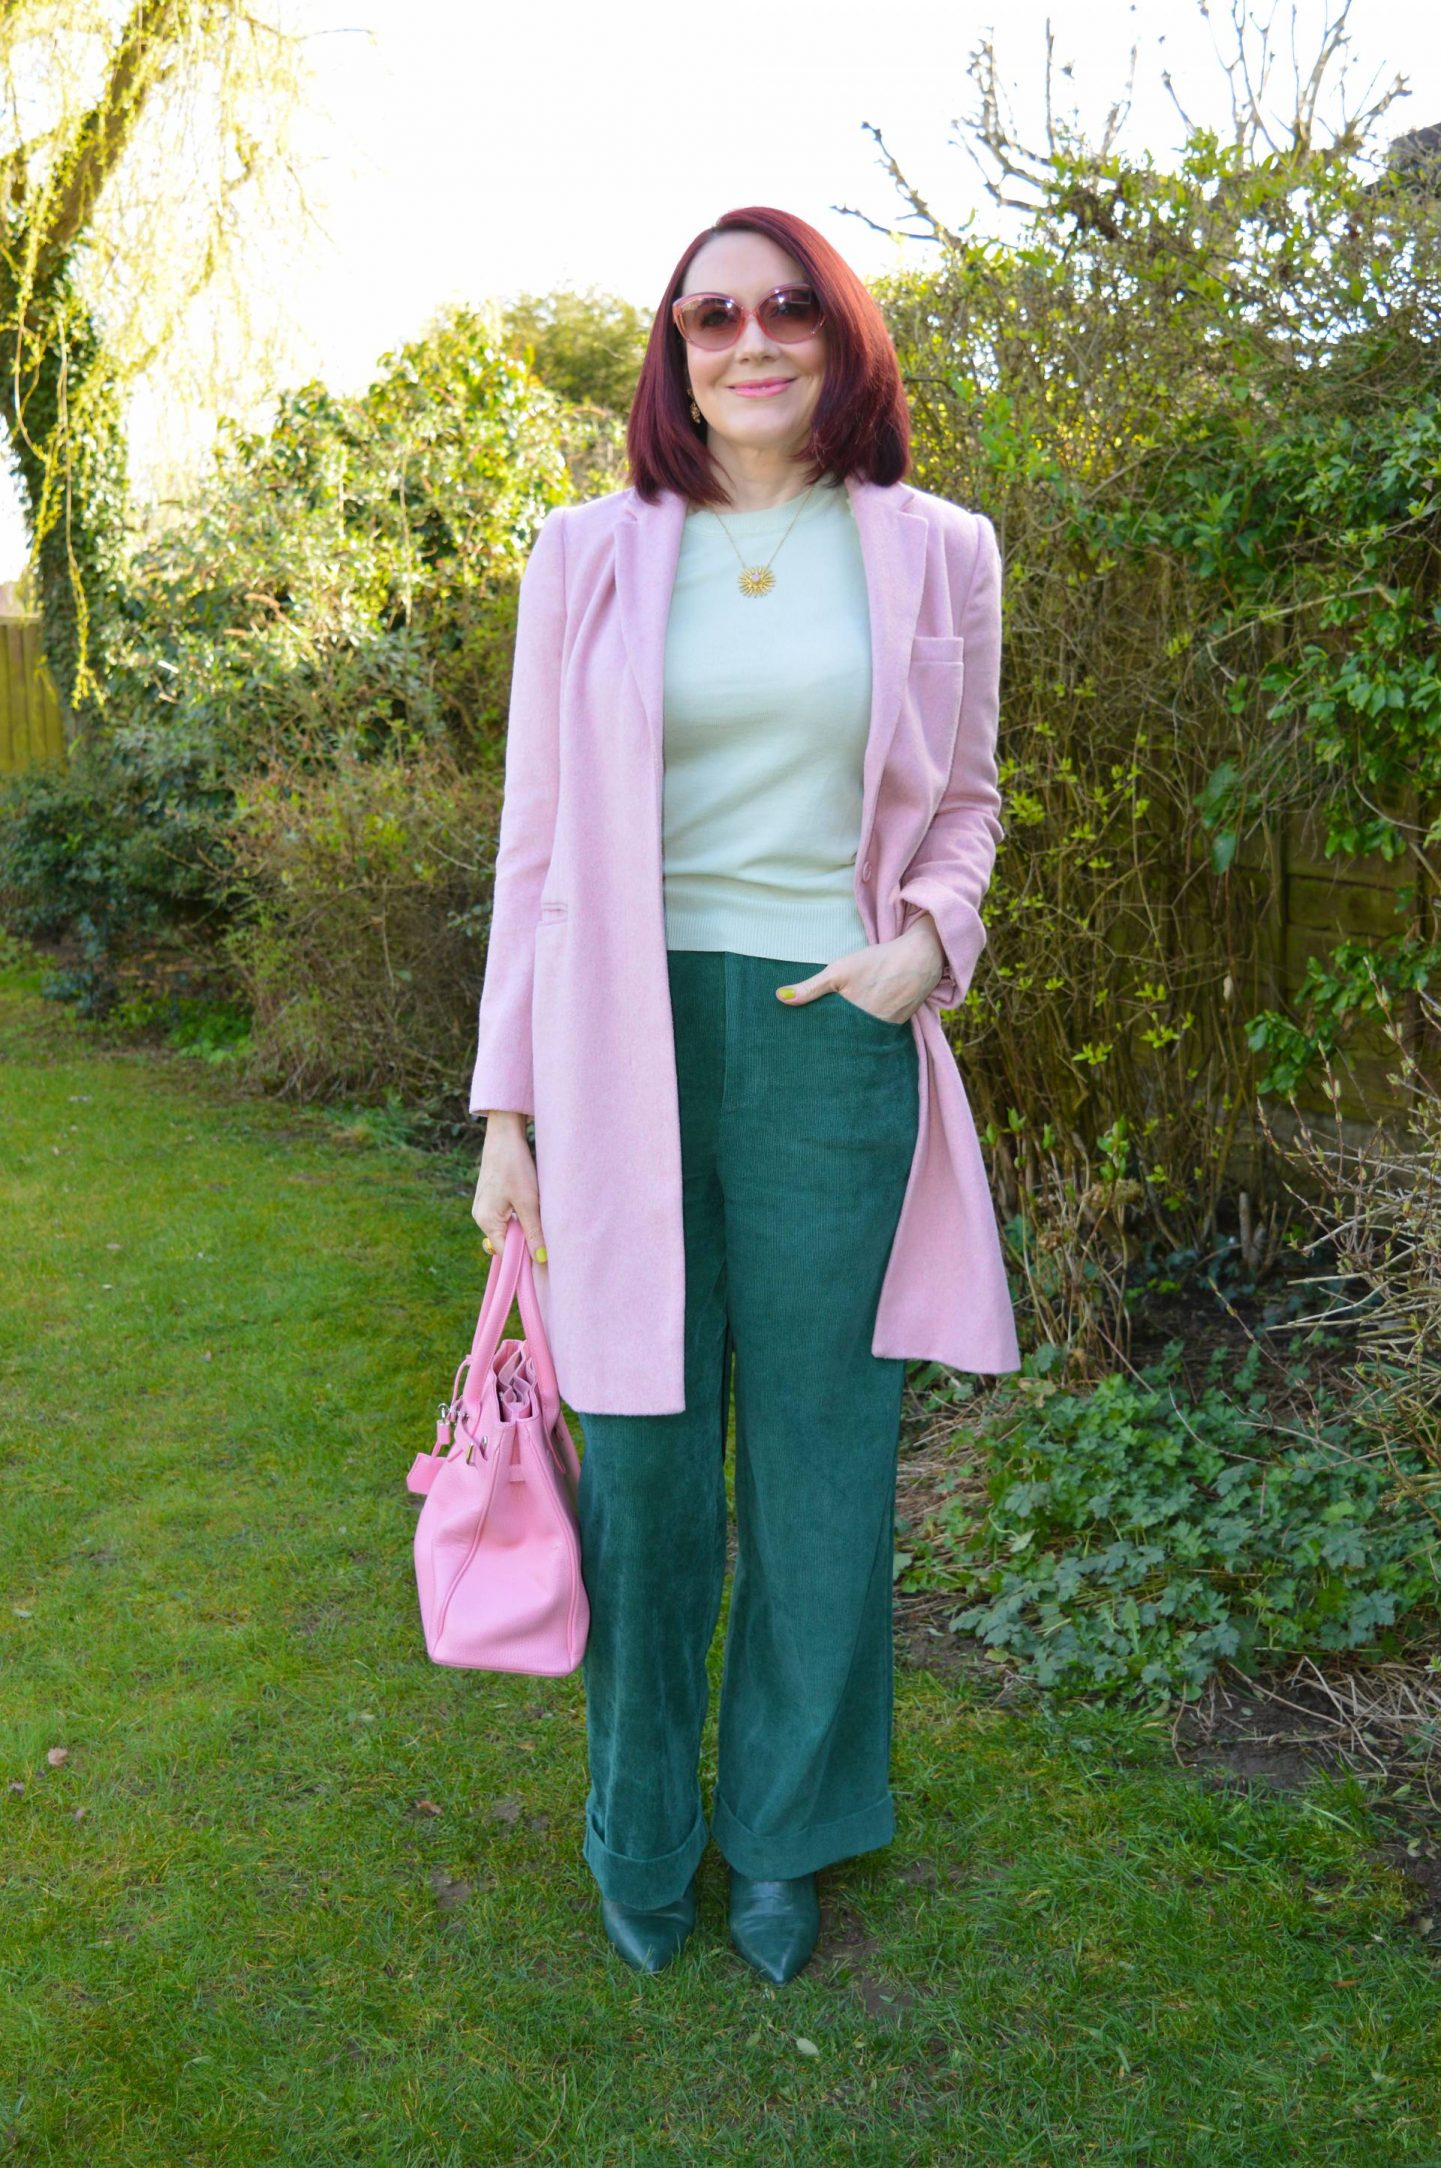 Green and Pastel Pink, Coast forest cord trousers, mint green sheer sleeve top, Great Plains pink coat, Asos dark green boots, J by Jasper Conran pink tote bag